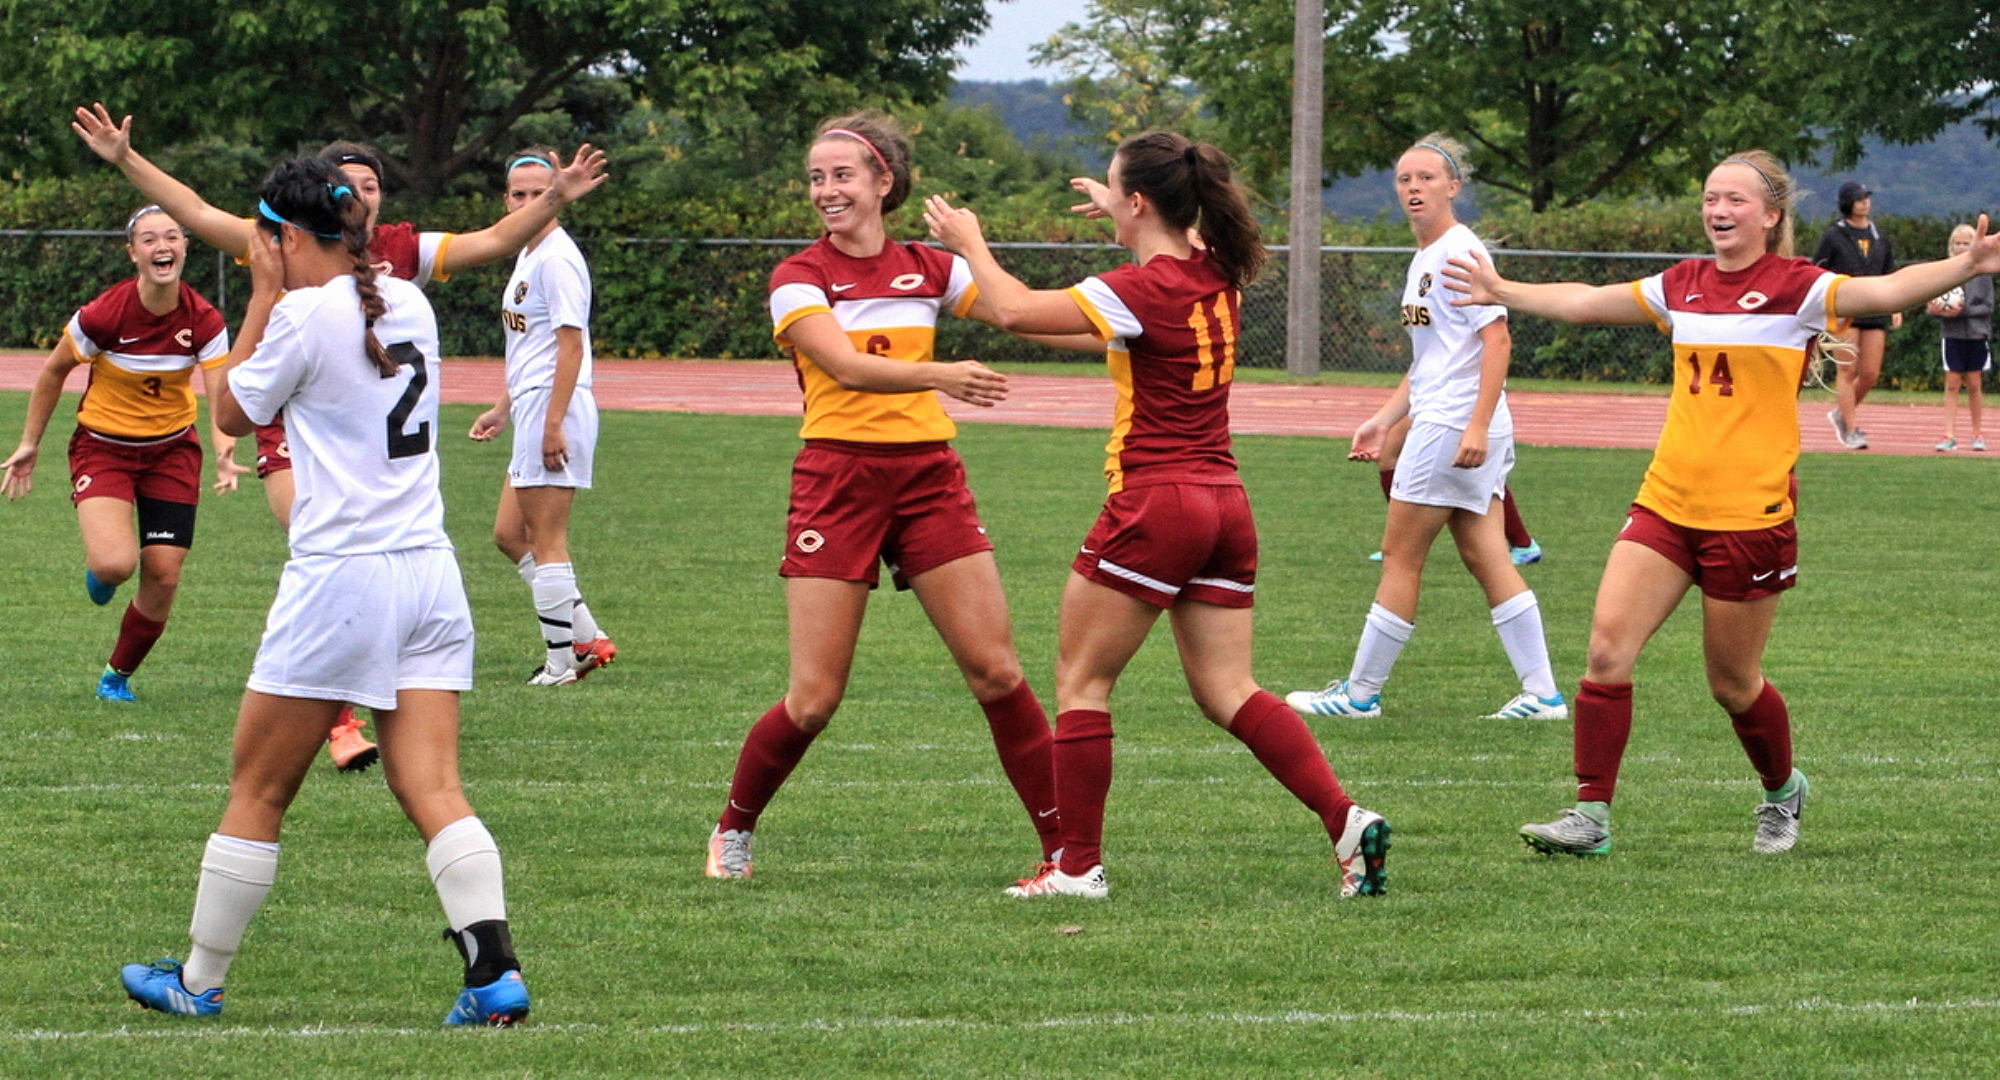 Concordia celebrates the early second-half goal by #11 Karsen Granning. (Photo courtesy of Todd Osmundson)